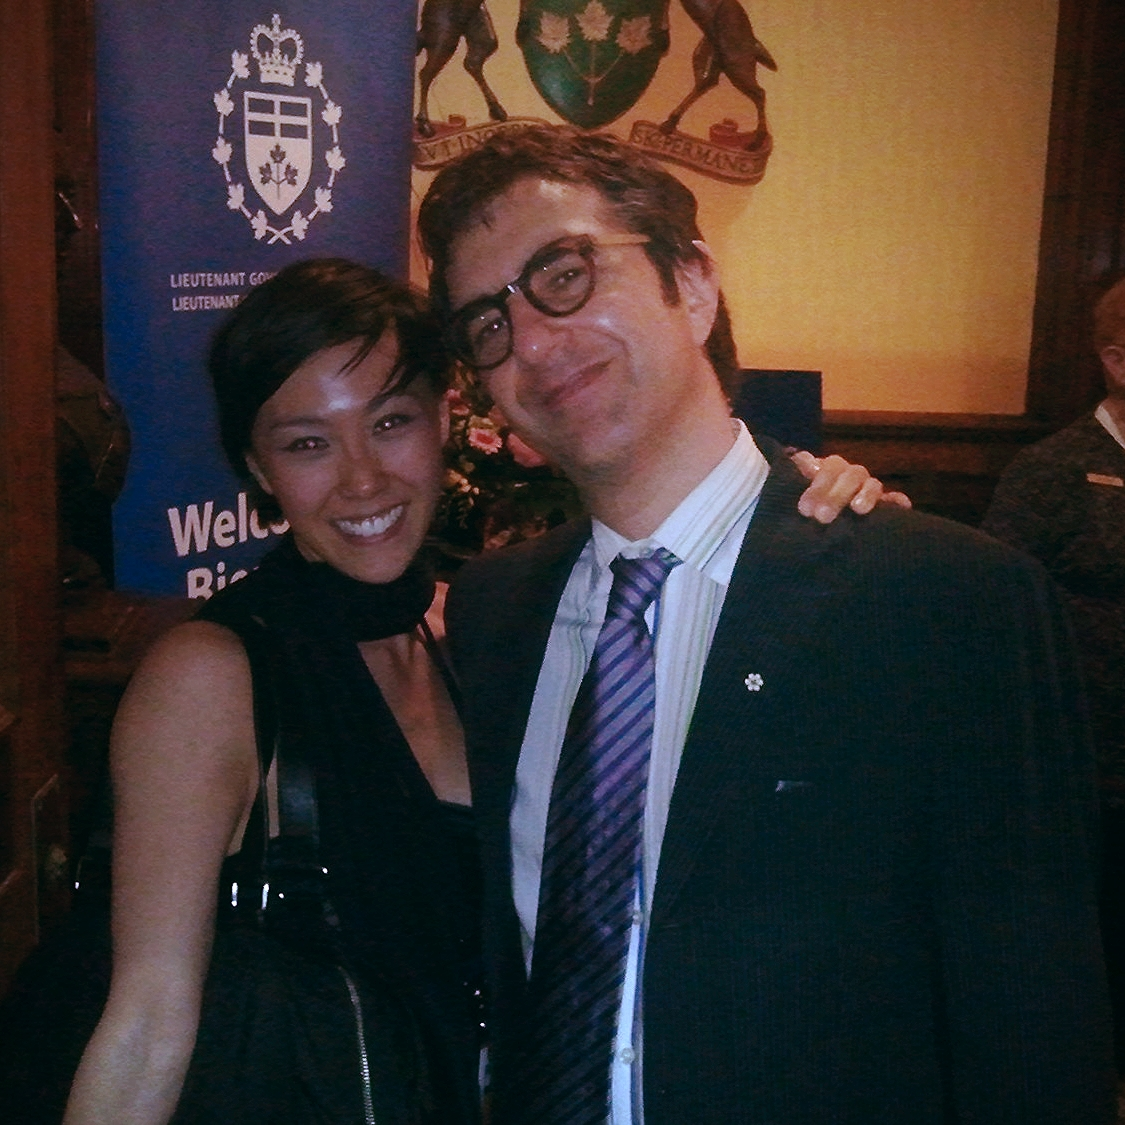 Celebrating the Canadian Premiere of  Feng Yi Ting  at Luminato with Director Atom Egoyan at the Lieutenant Governor's Residence in Toronto.